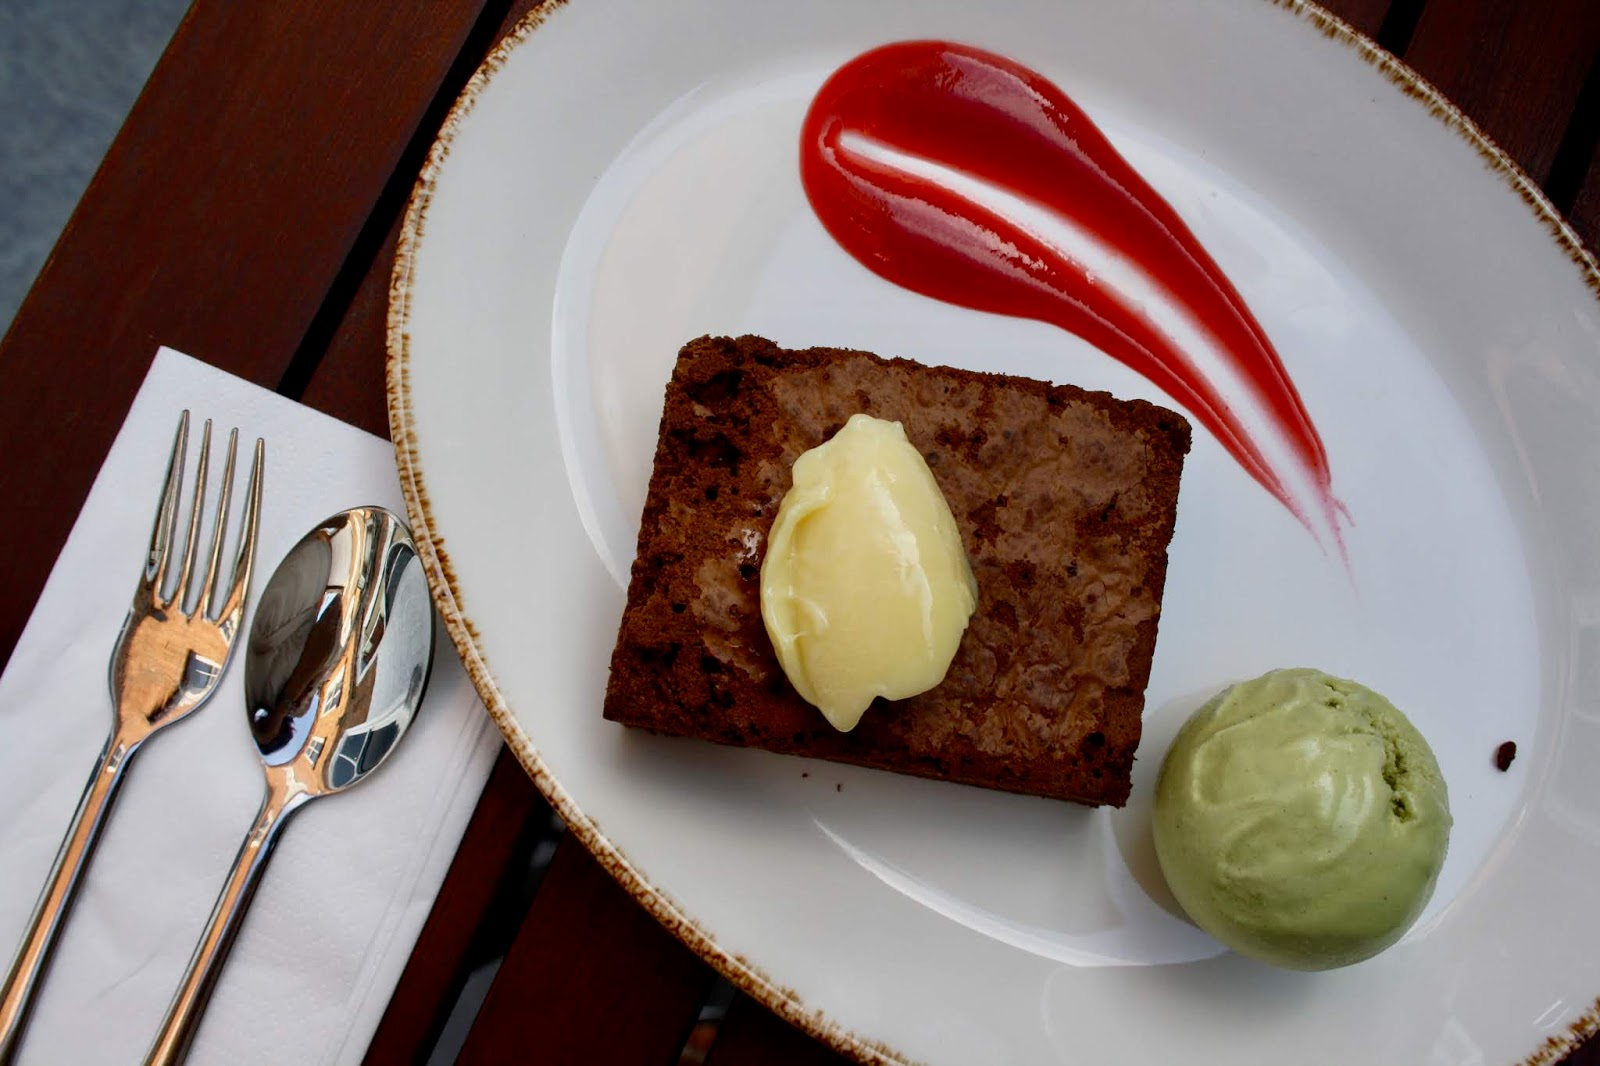 Chocolate brownie with Judes pistachio ice cream at King Richard III chop house, Leicester